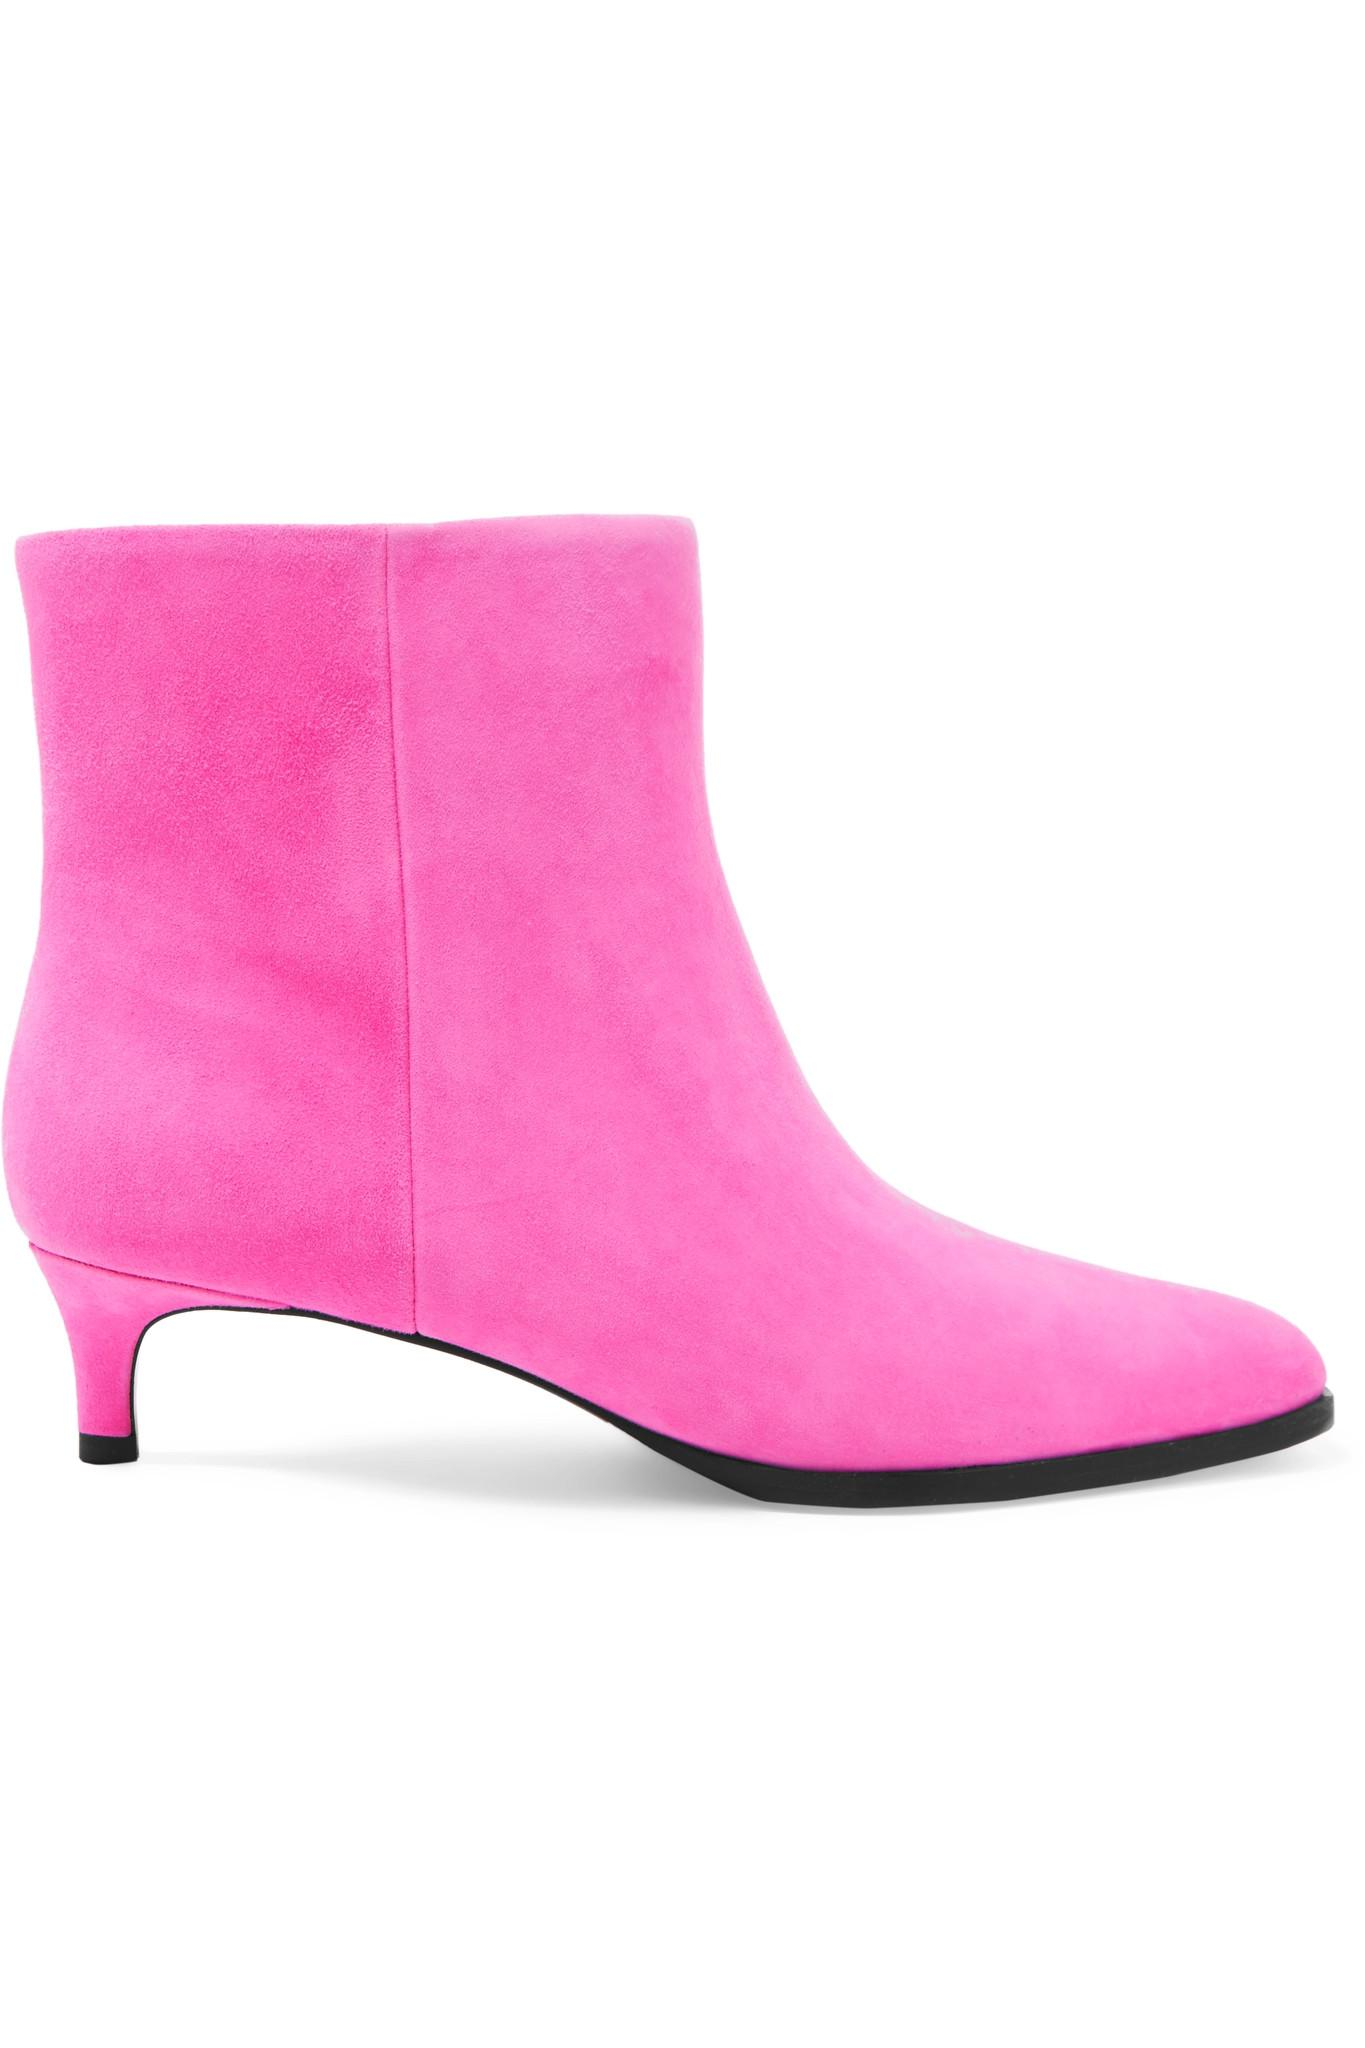 d3f239603585d Lyst - 3.1 Phillip Lim Agatha Suede Ankle Boots in Pink - Save 60%